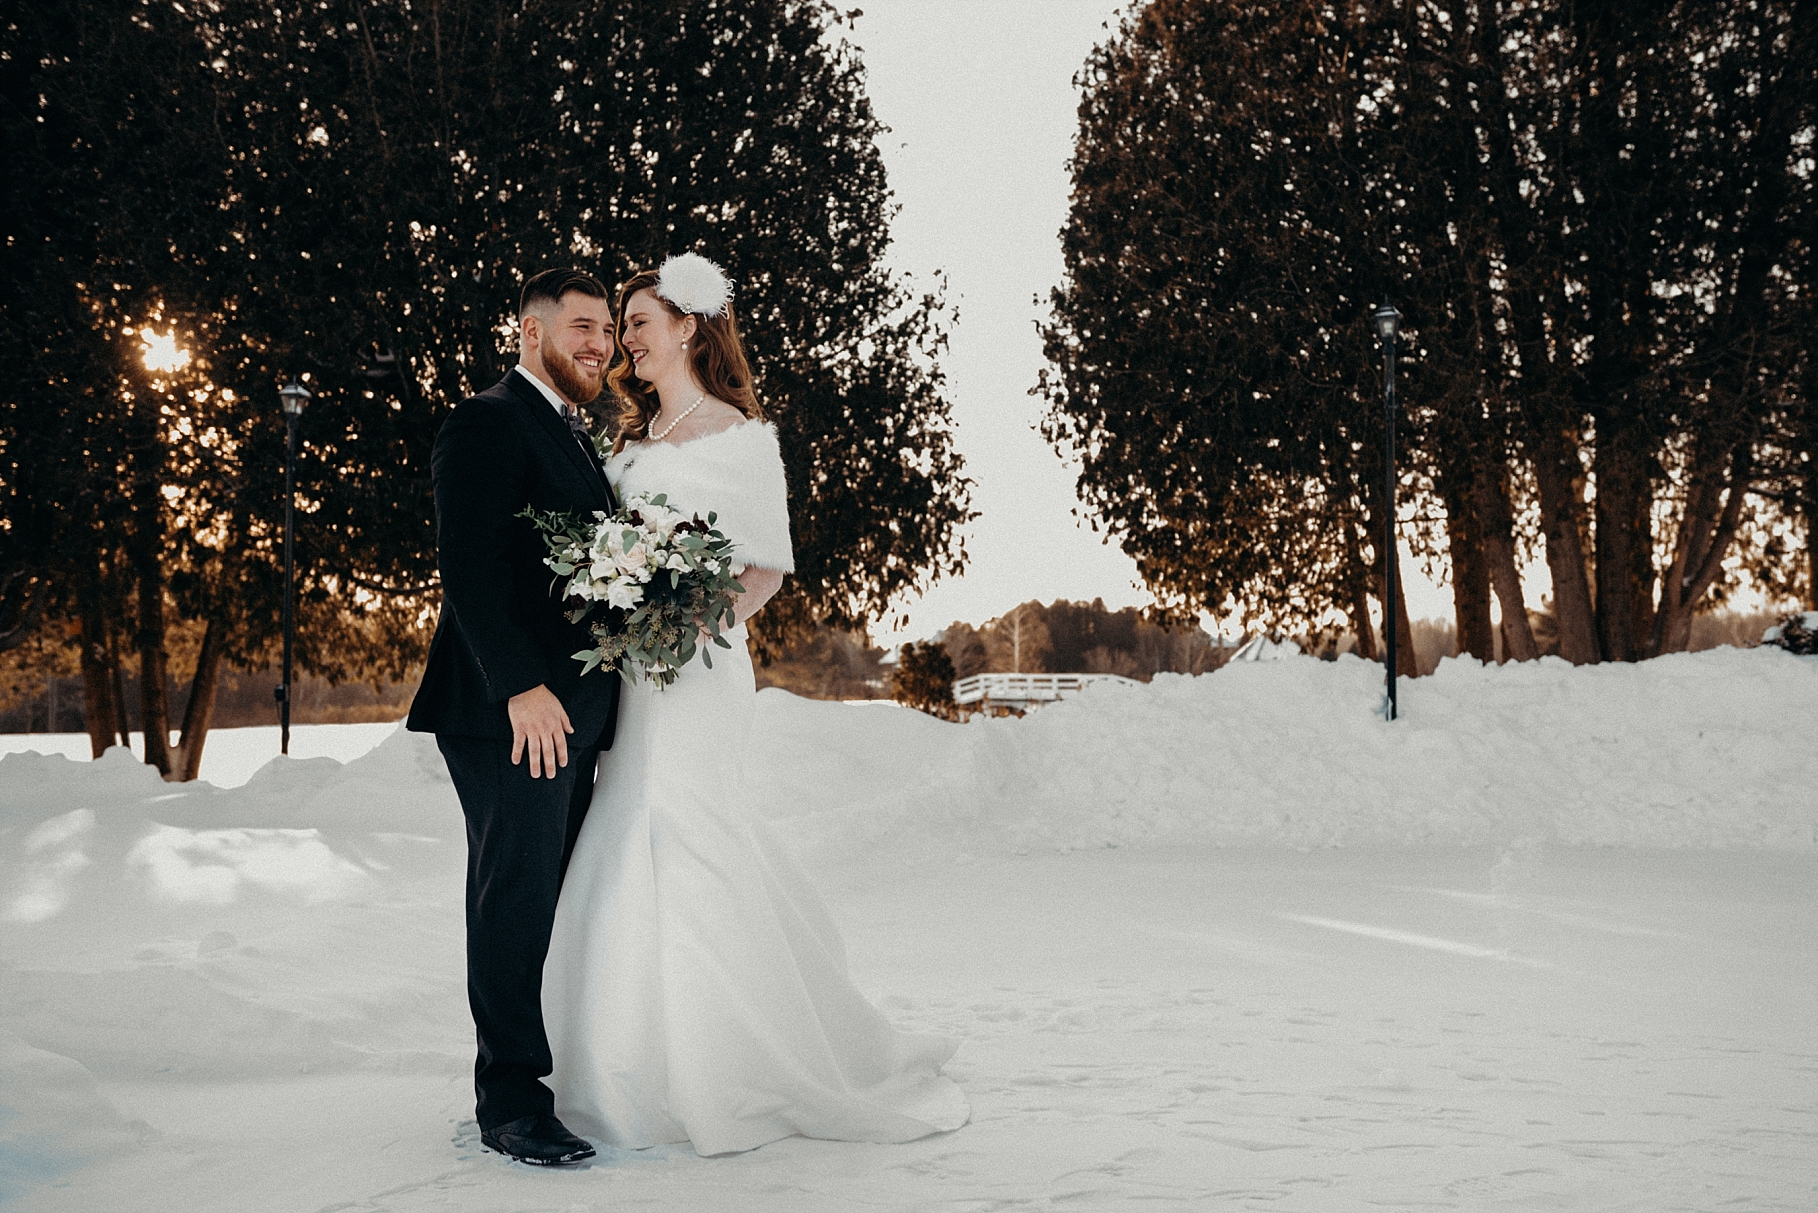 Orchard View Wedding by Mocha Tree Studios Ottawa Wedding and Engagement Photographer and Videographer Dark Moody Intimate Authentic Modern Romantic Cinematic Best Candid 18 winter